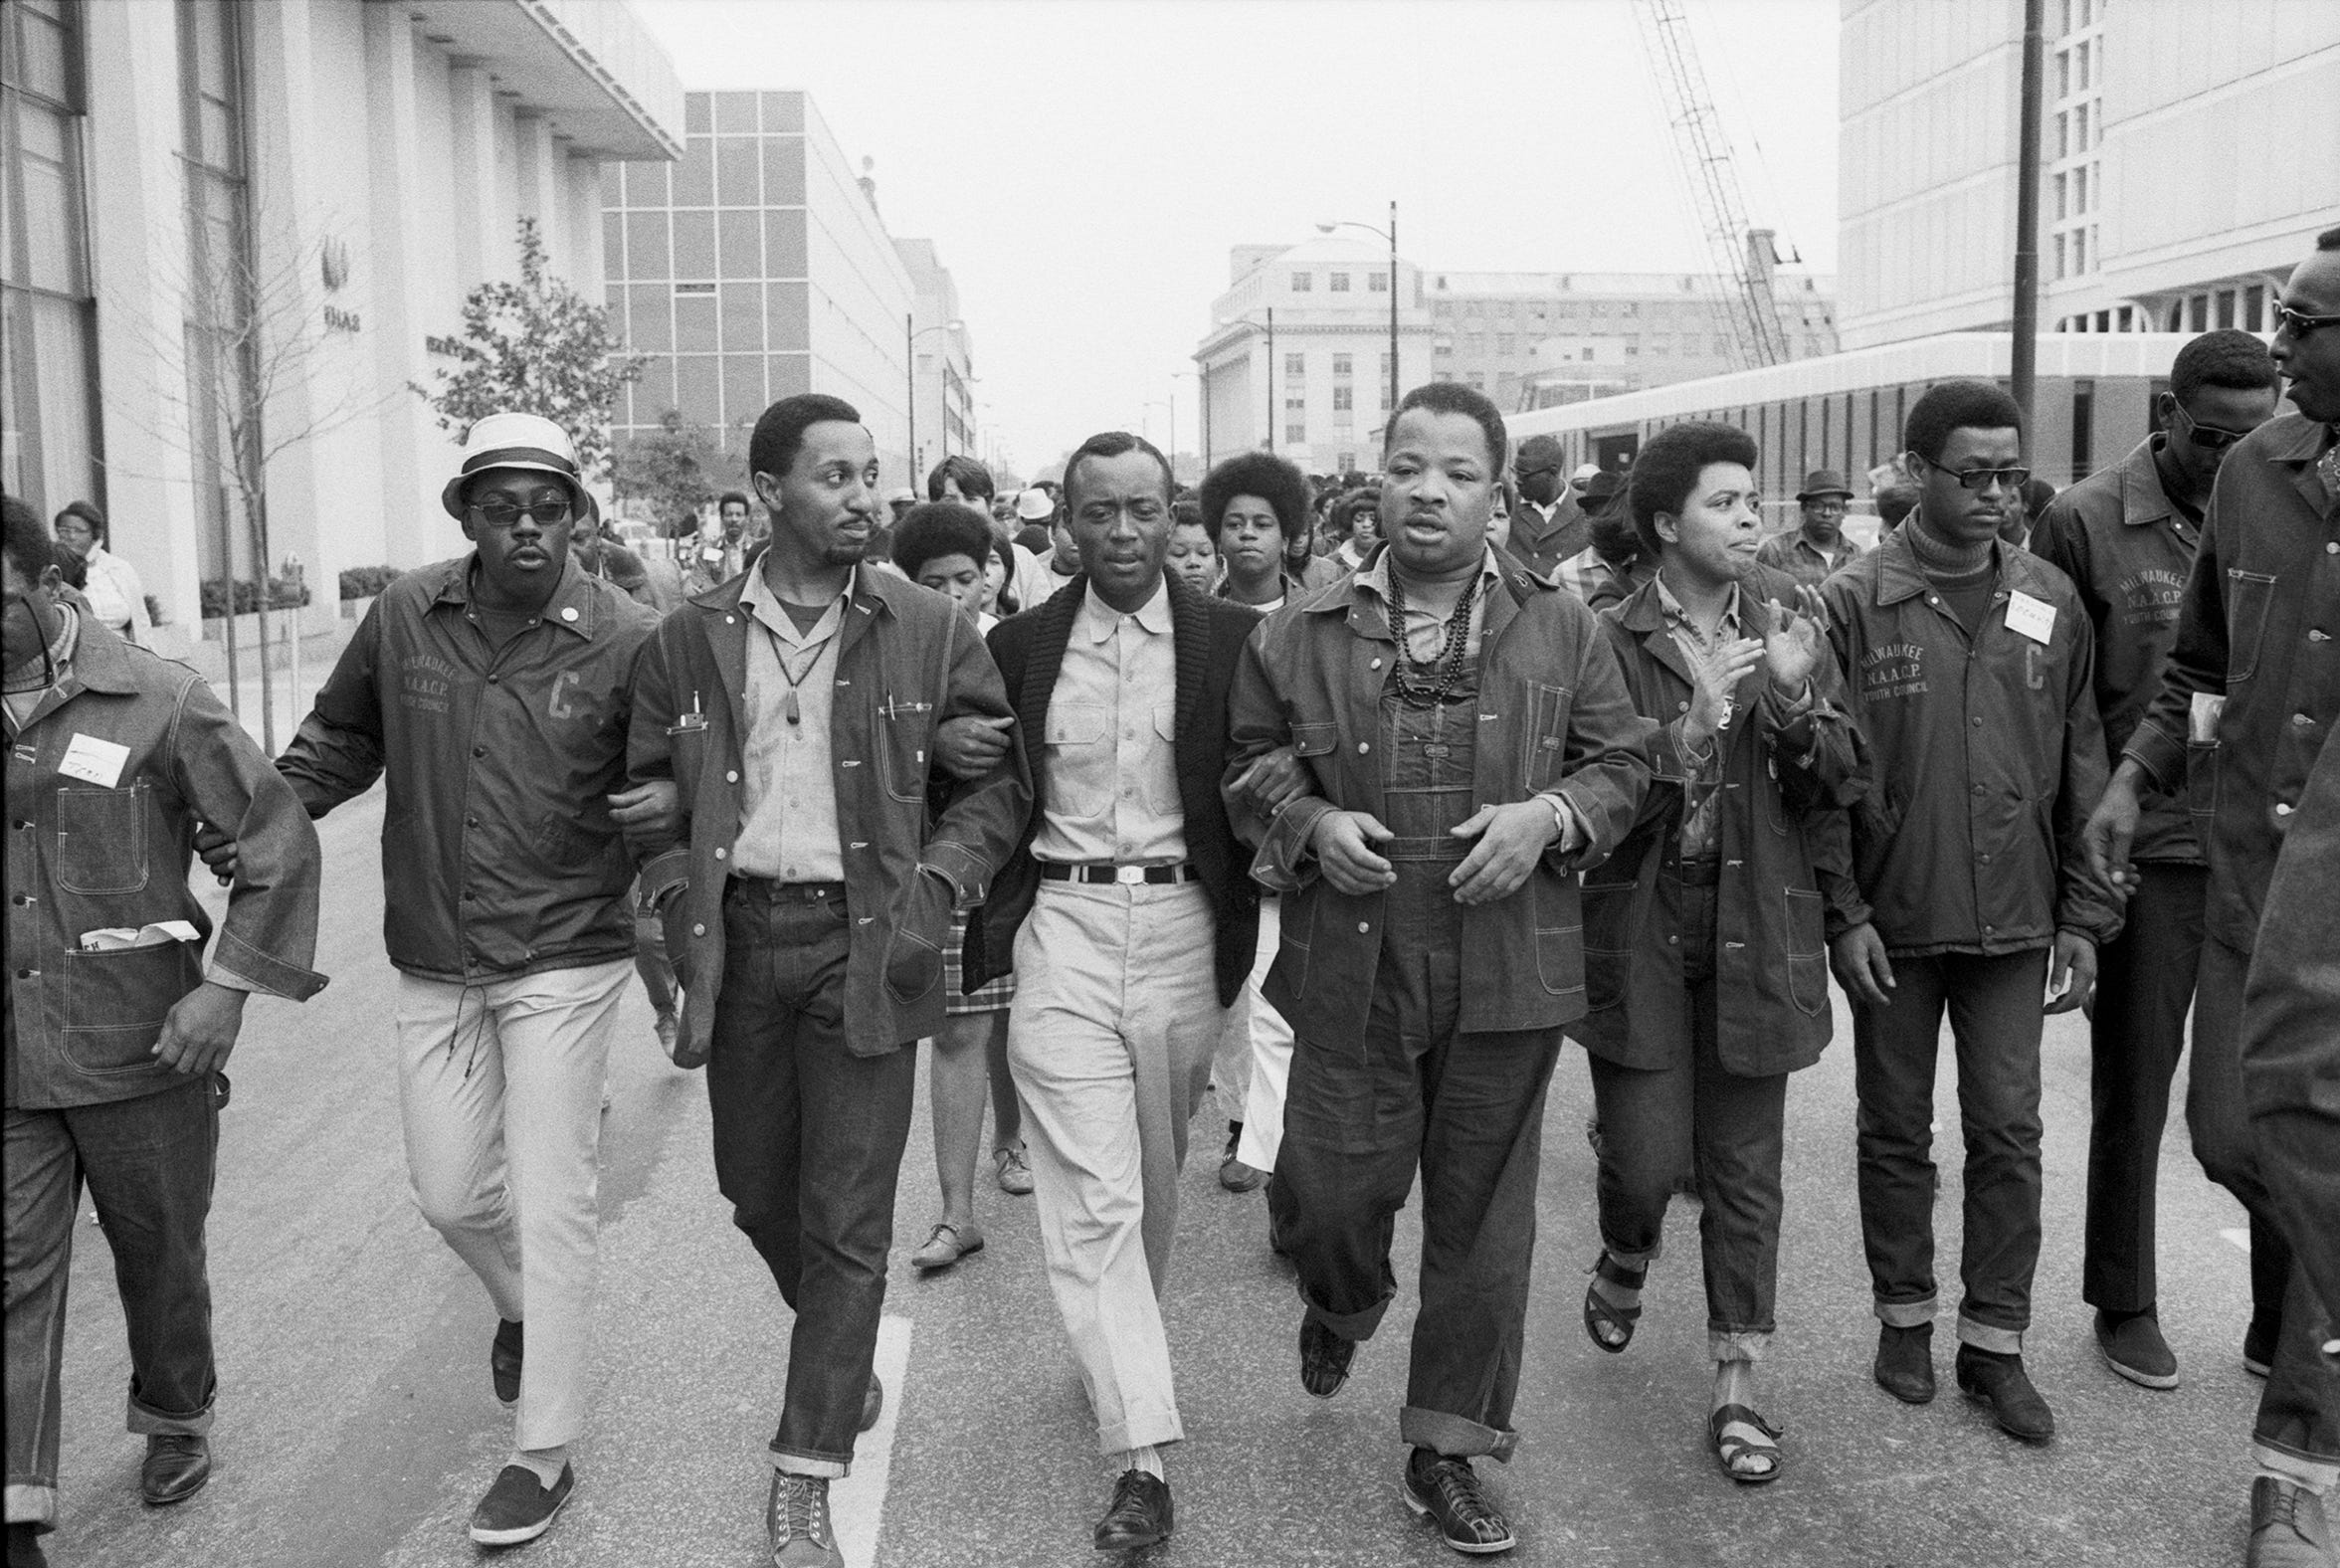 The Rev. Charles Elliott Jr., center, marched with Dr. Ralph Abernathy (in overalls), and members of the Milwaukee NAACP at the Poor People's March along Sixth Street in Louisville. May 10, 1968.